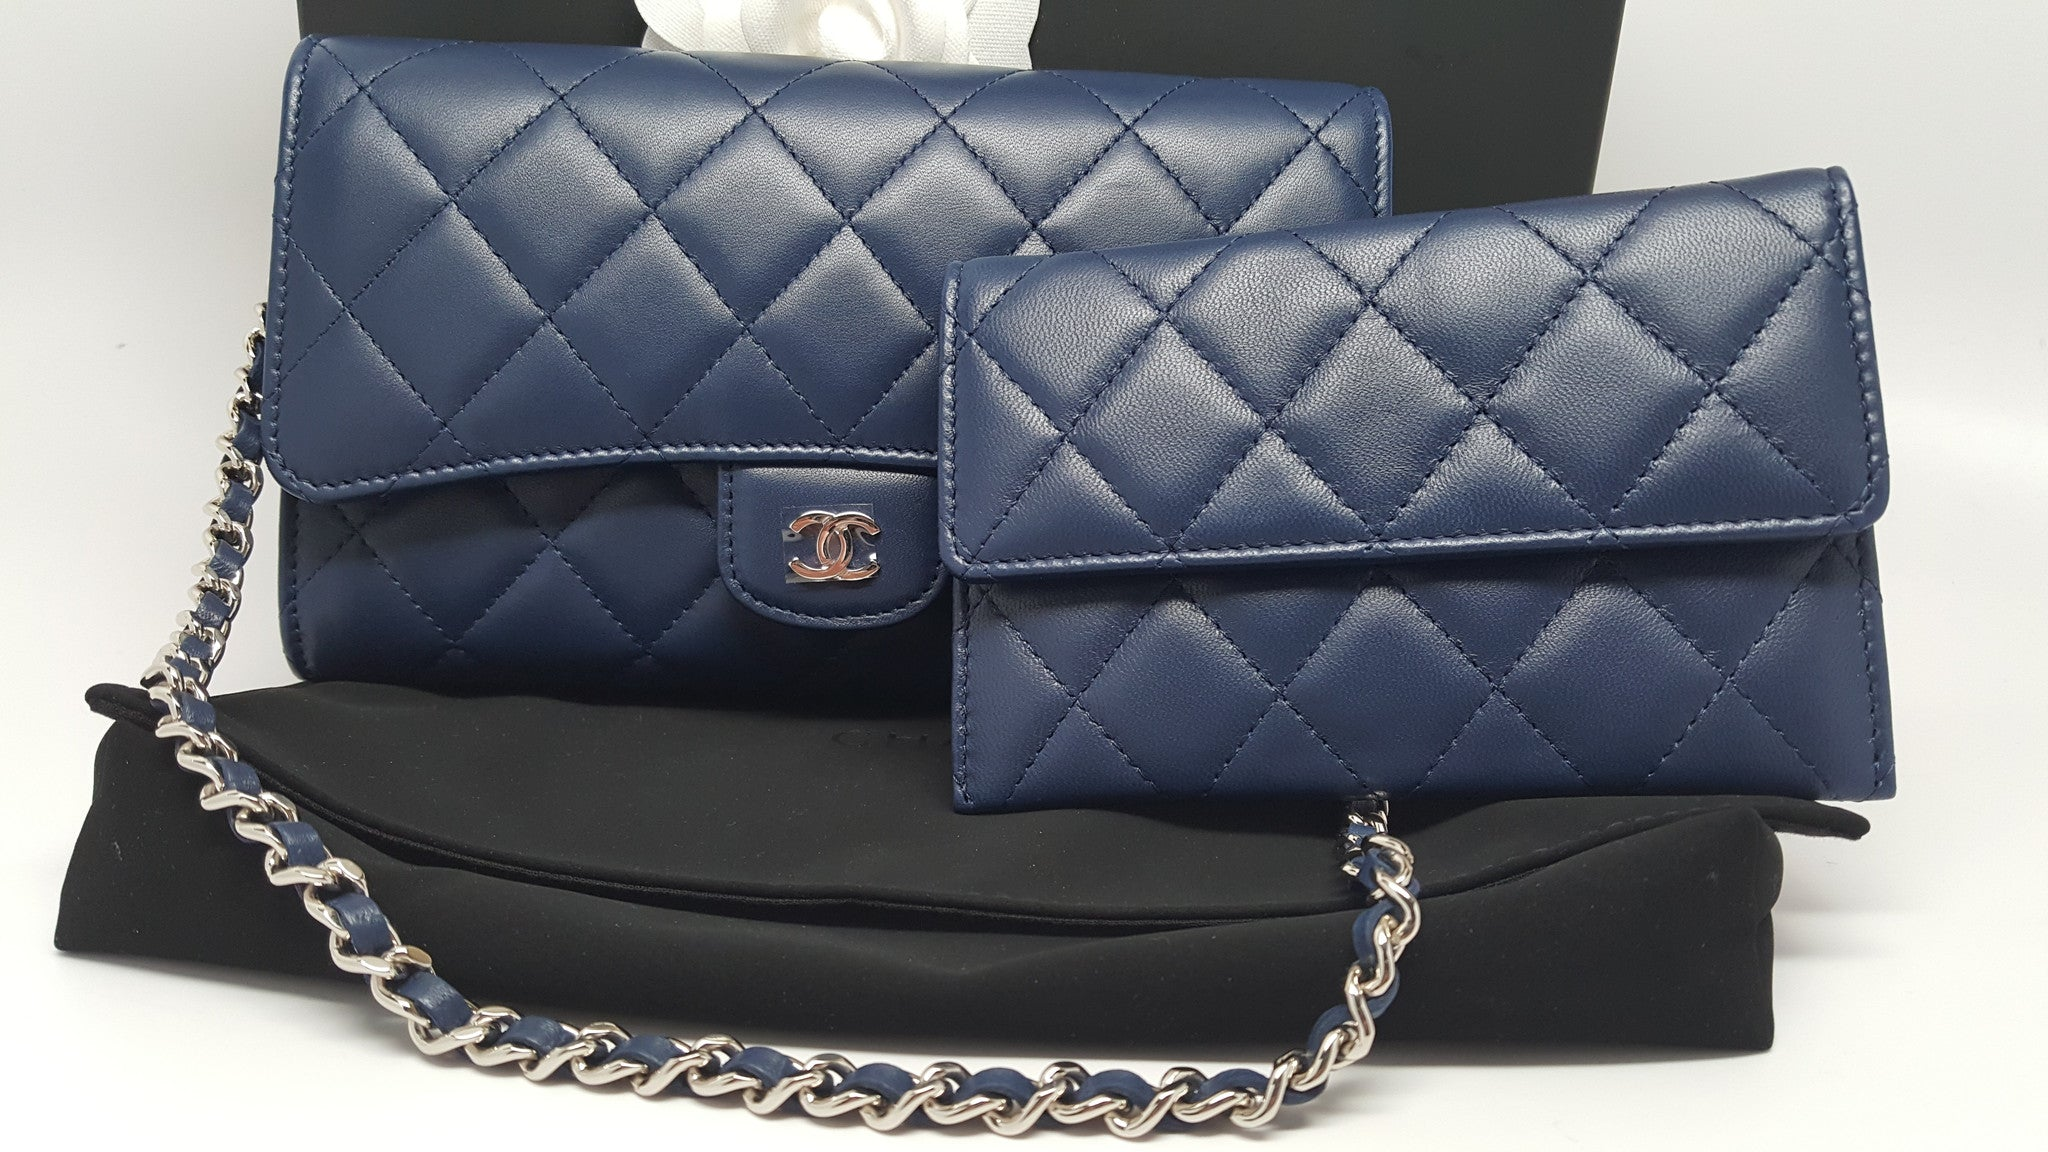 d5e2cebfabbb CHANEL QUILTED LAMBSKIN FLAP WALLET ON CHAIN IN DARK BLUE – Hebster Boutique